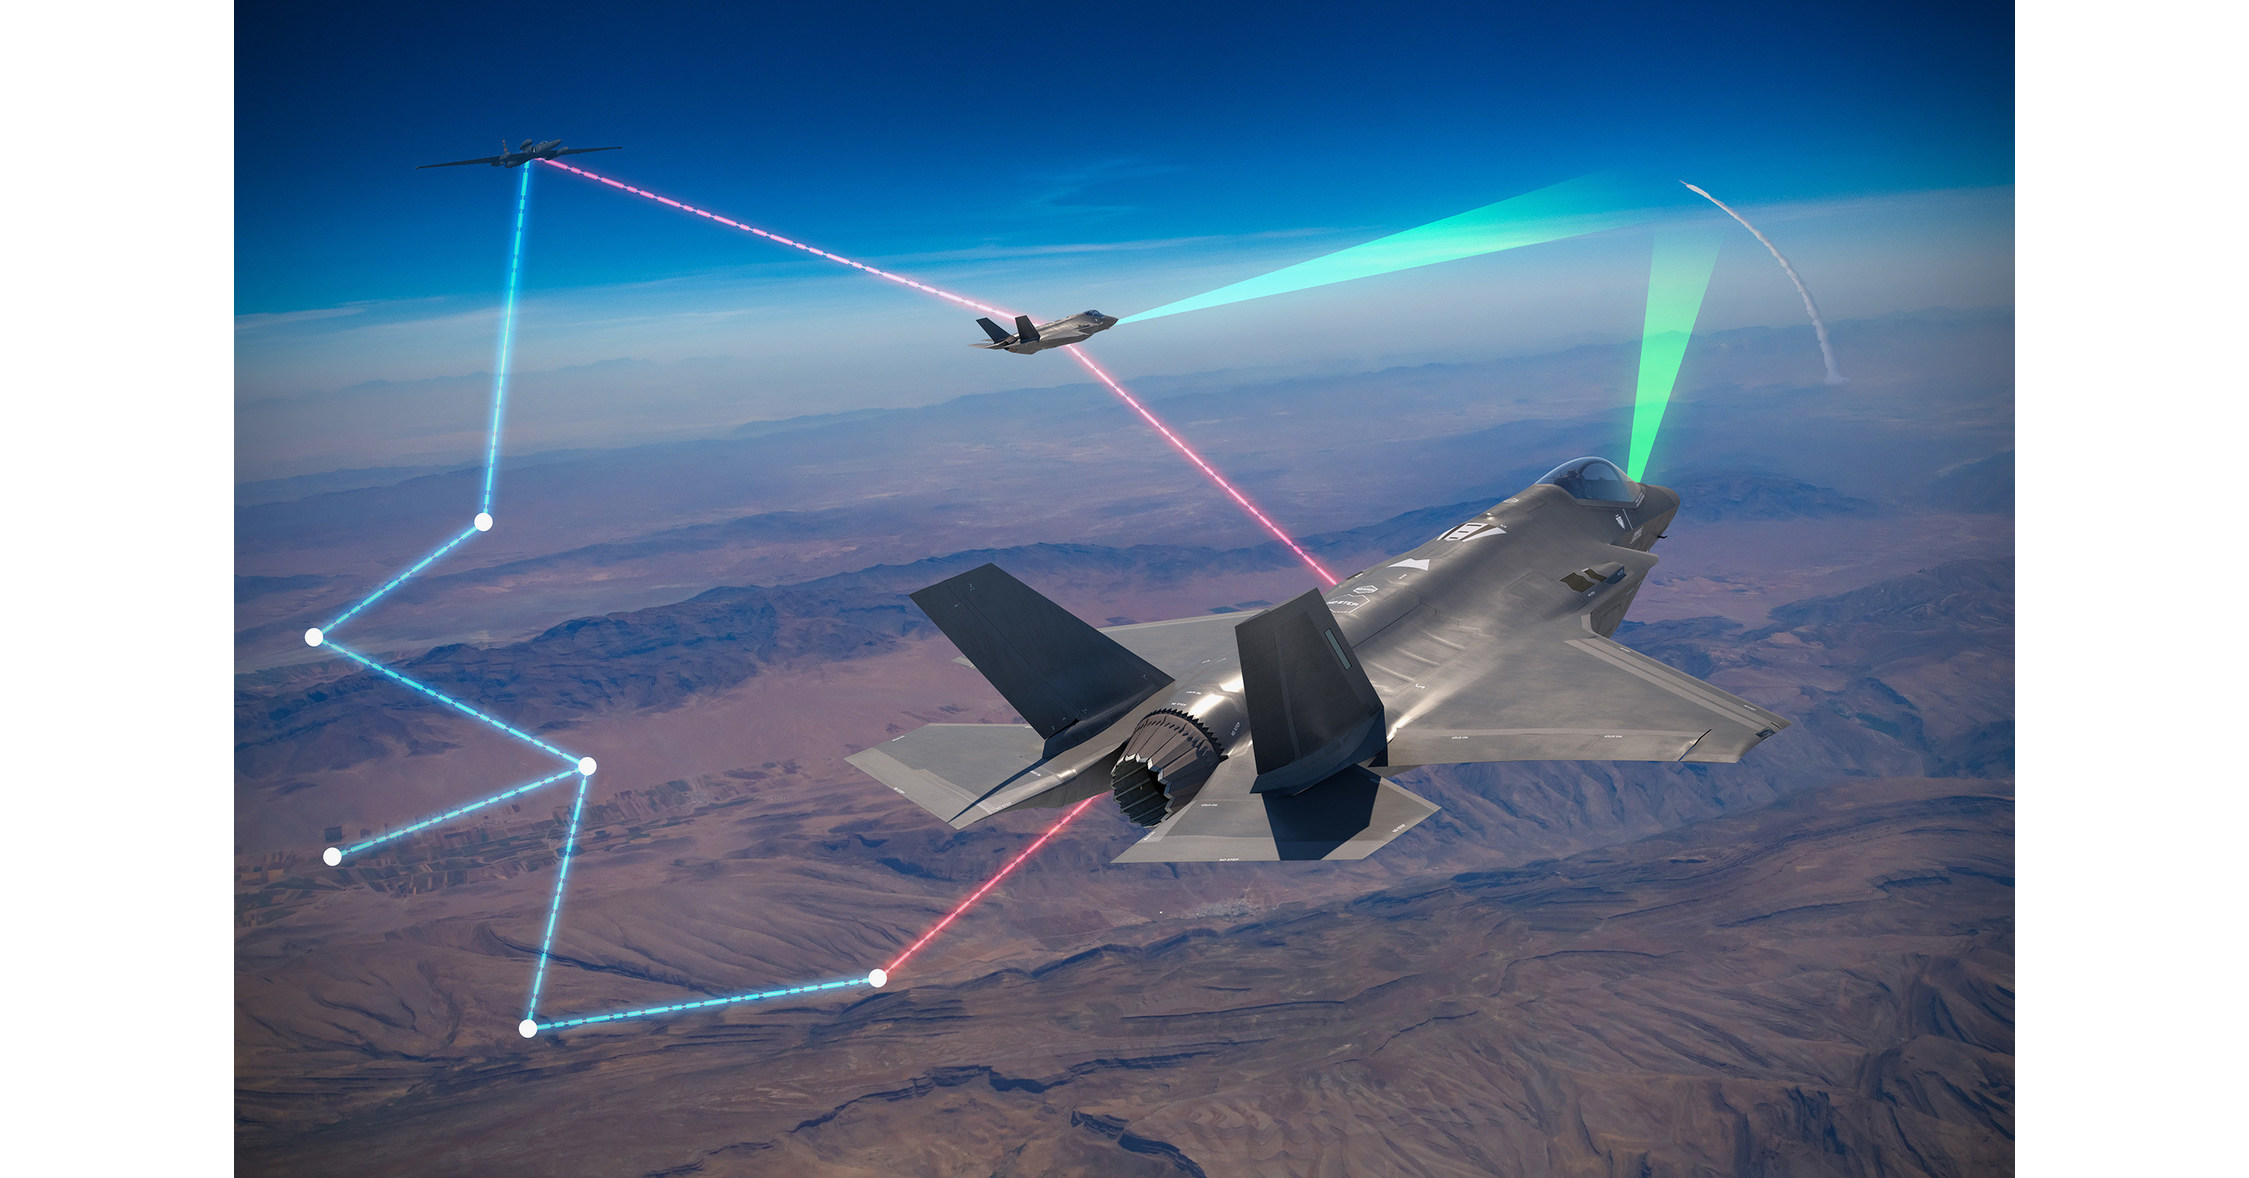 Lockheed Martin Skunk Works Project Riot Demonstrates Multi Domain Operations Sep 16 2019